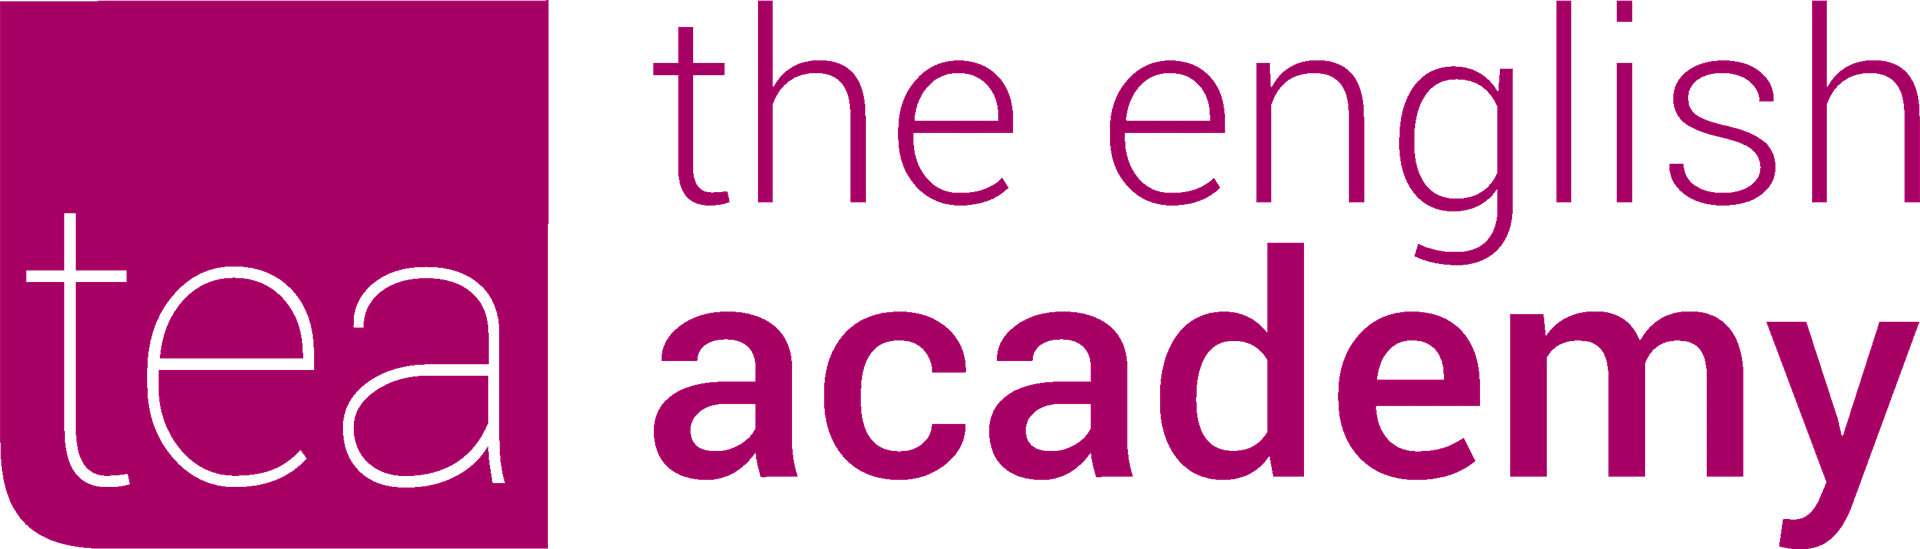 The English Academy-Ensino de Línguas Lda Logo